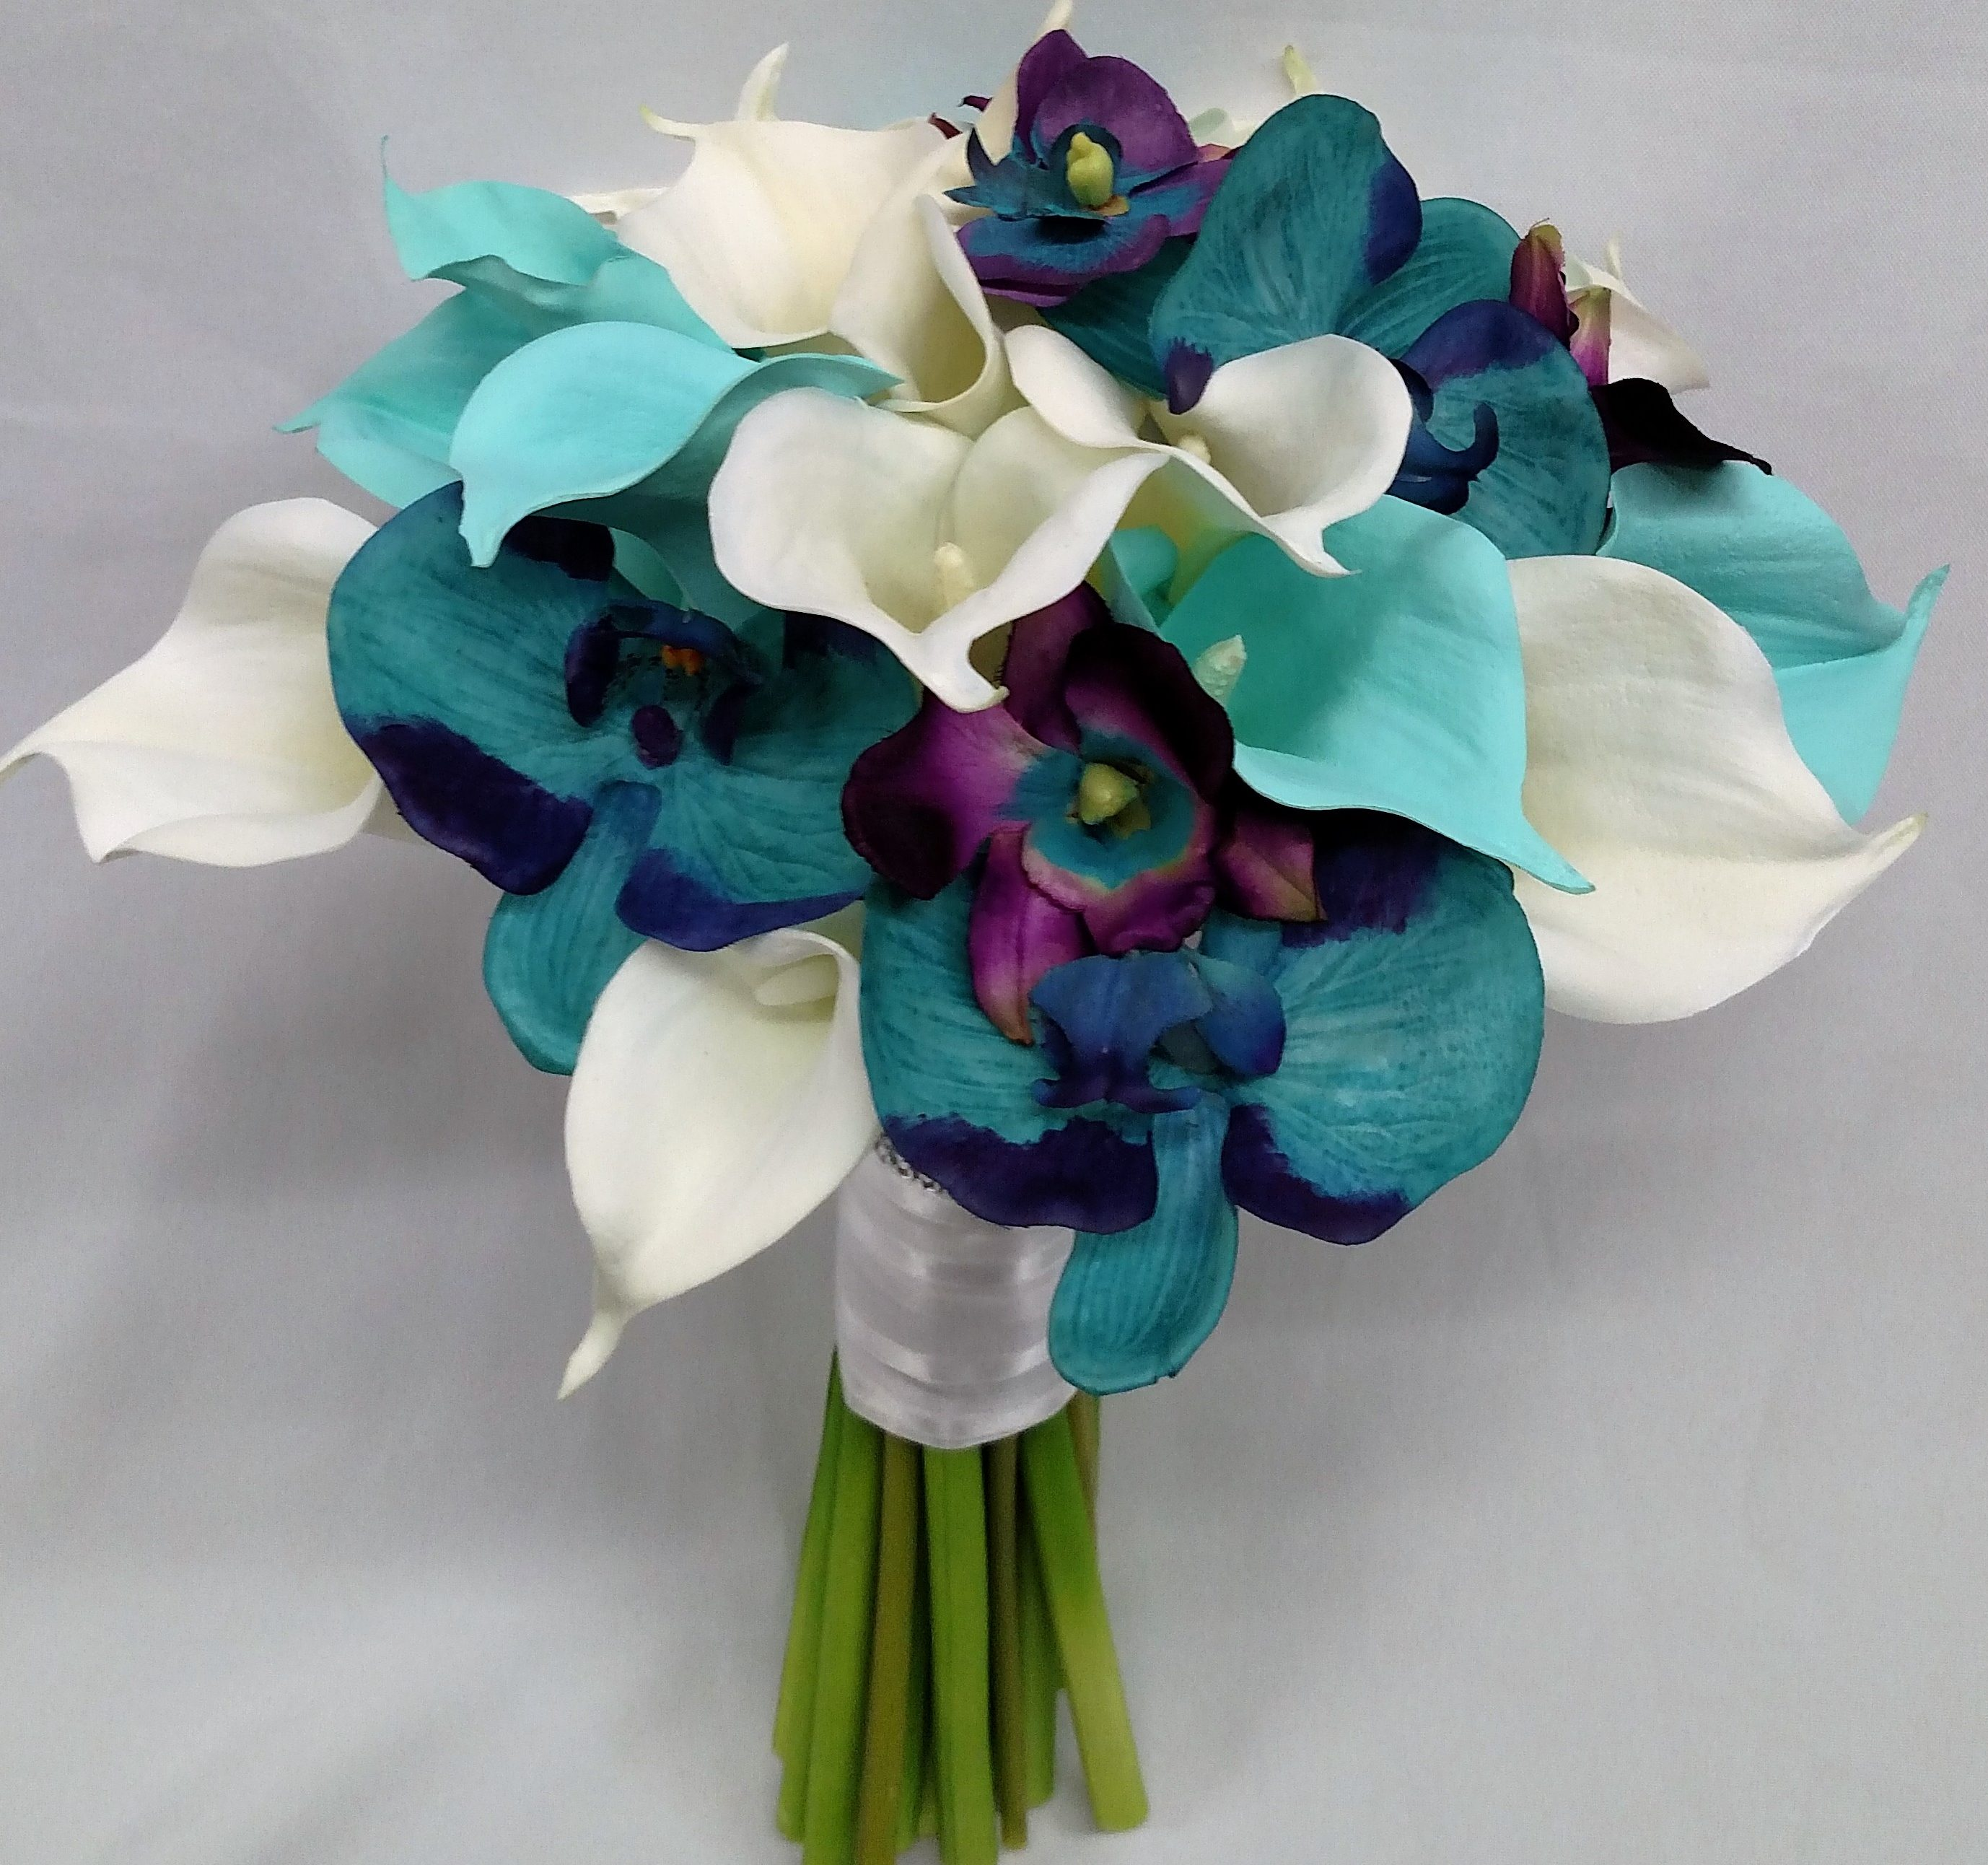 Orchid and calla lily bouquet a unique flower gift shop orchid and calla lily bouquet izmirmasajfo